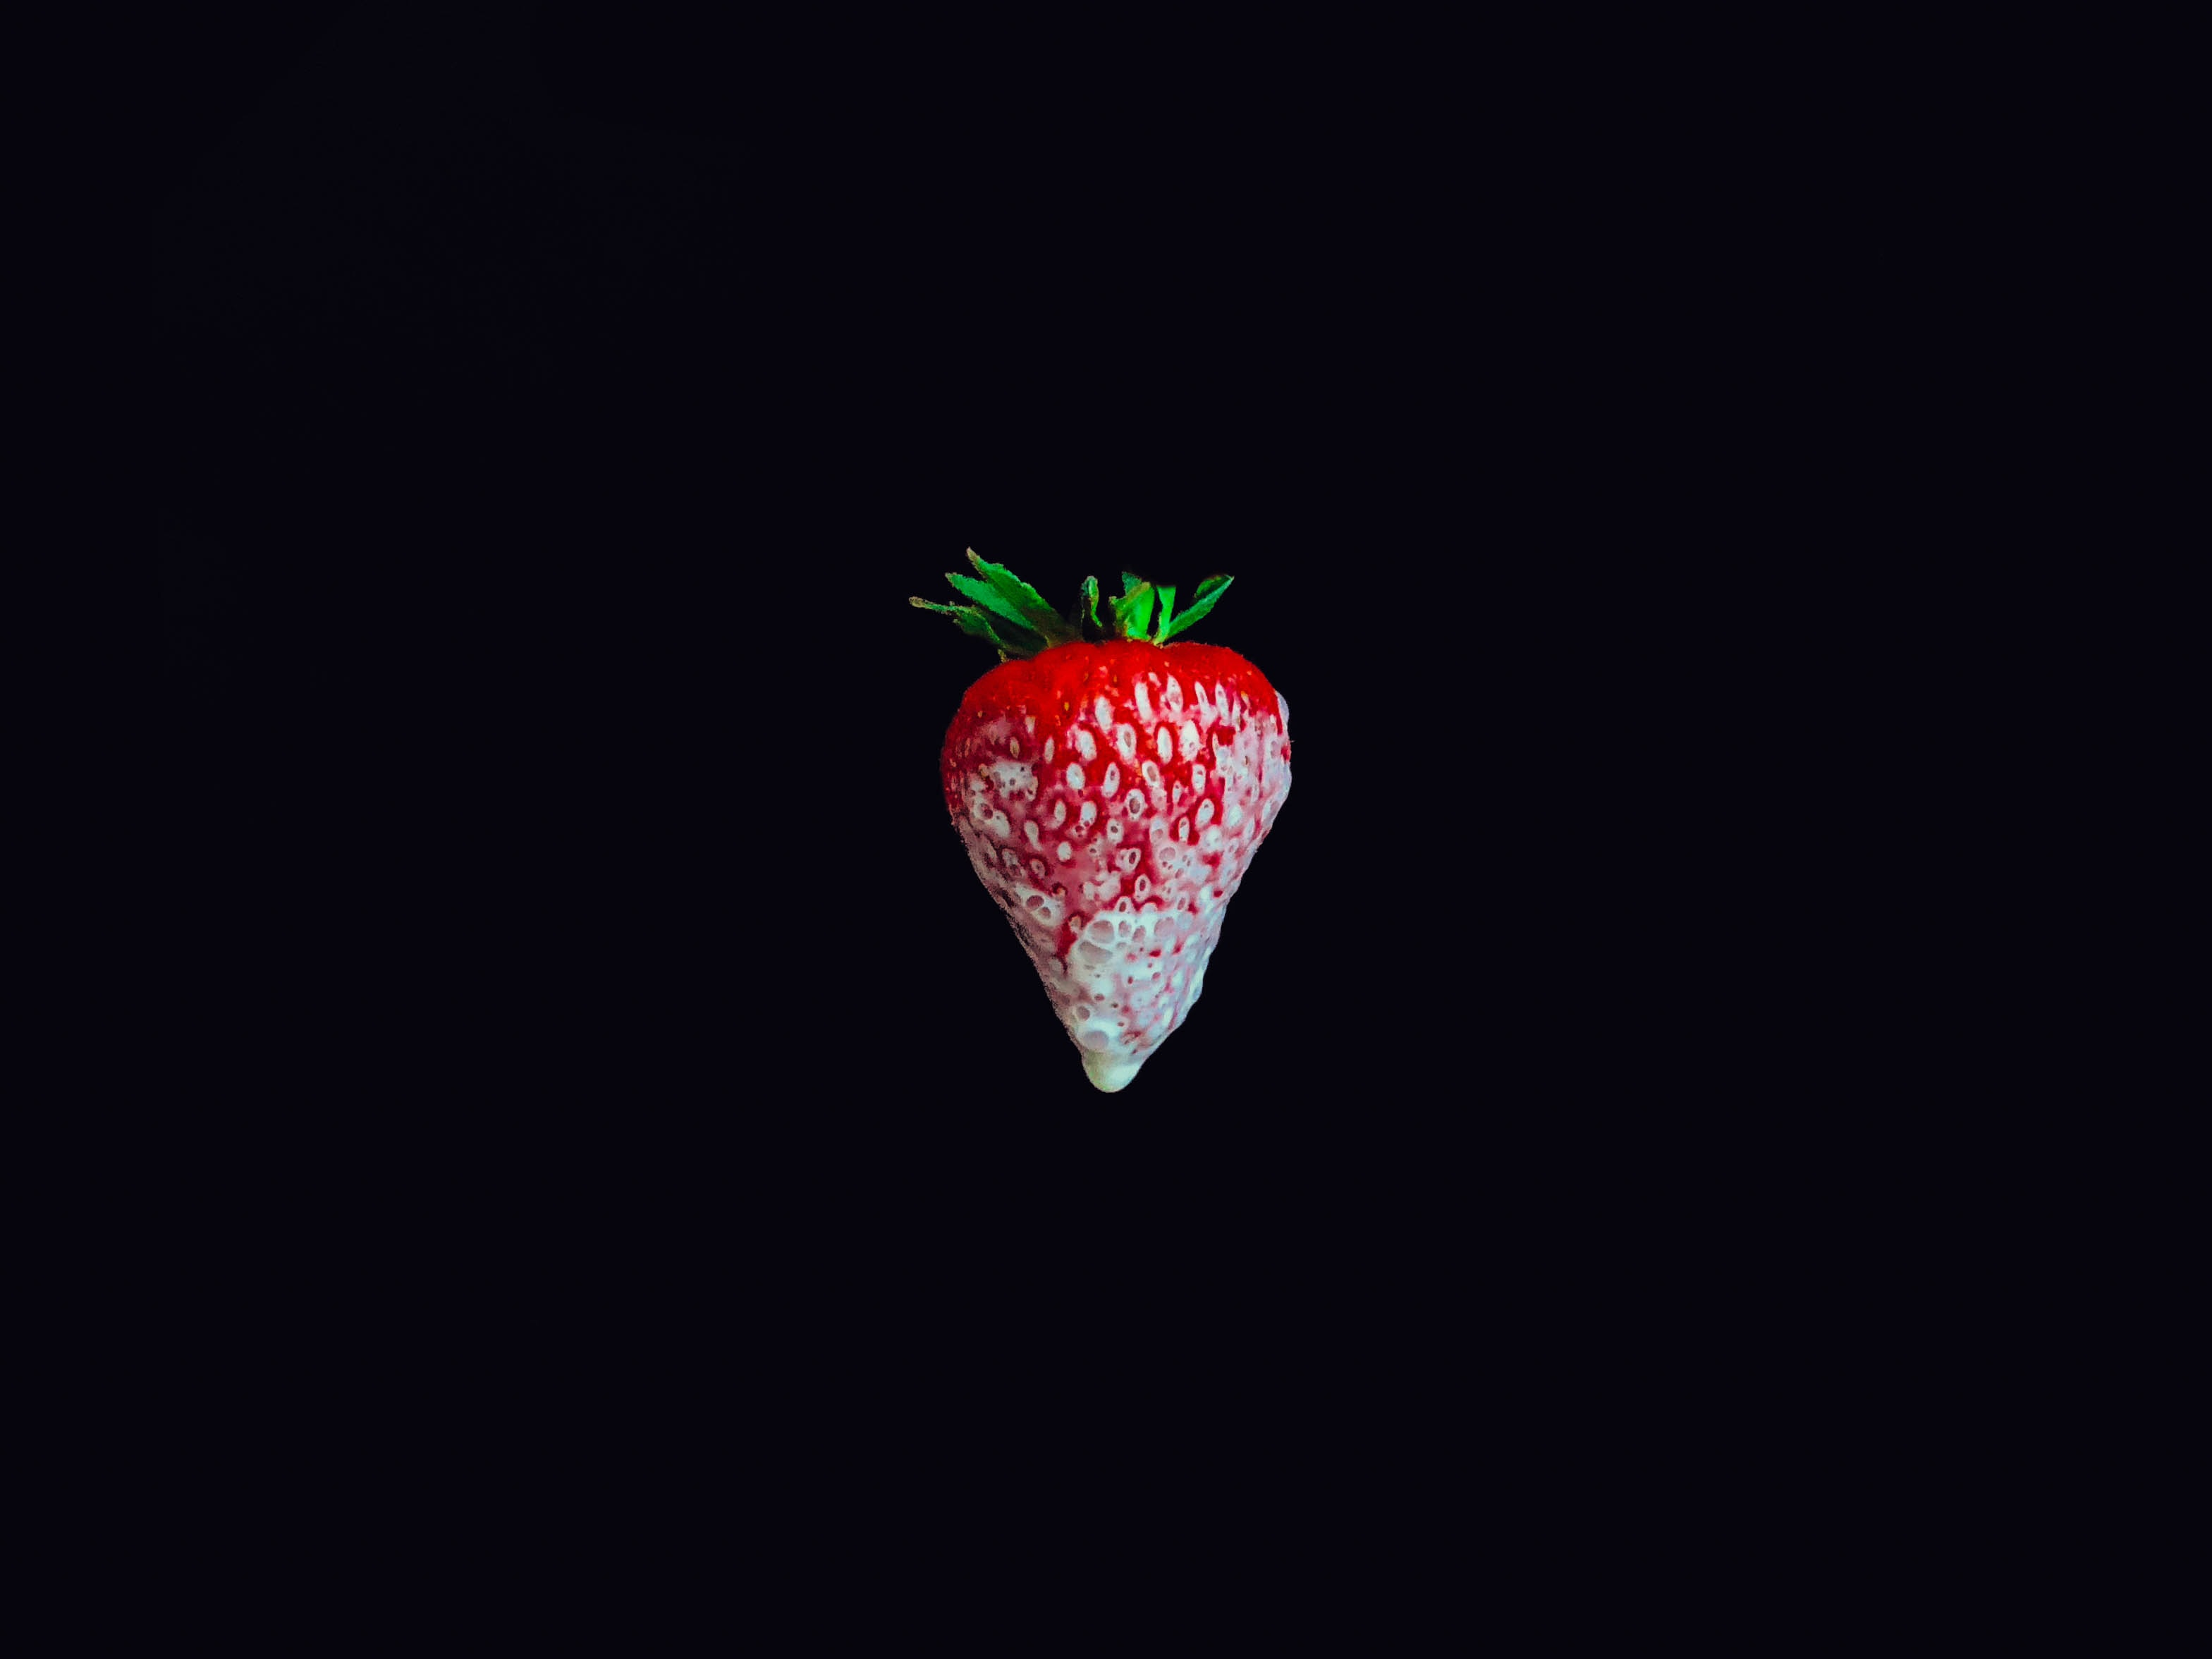 strawberry on black surface